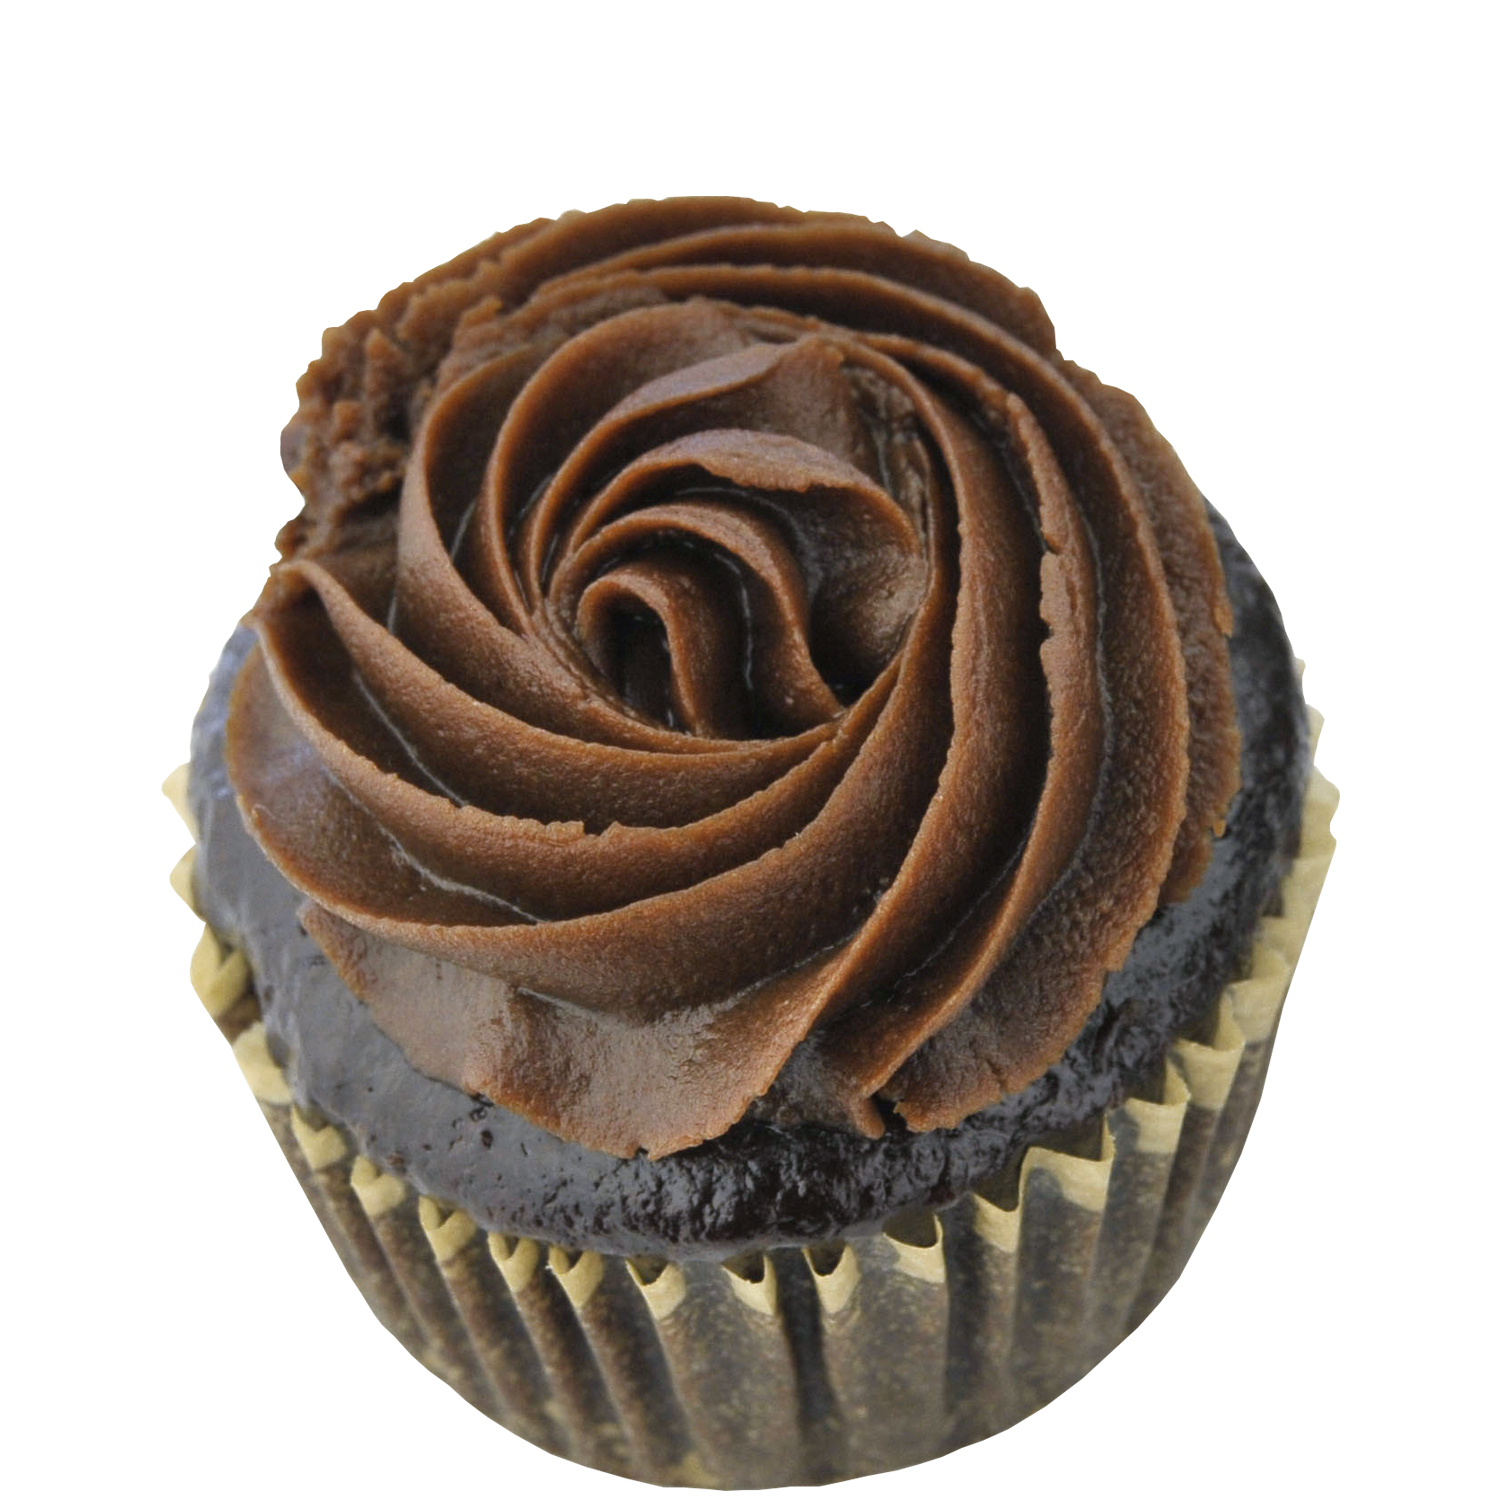 Gluten Free Vegan Chocolate Buttercream Cupcake by The Allergy Chef